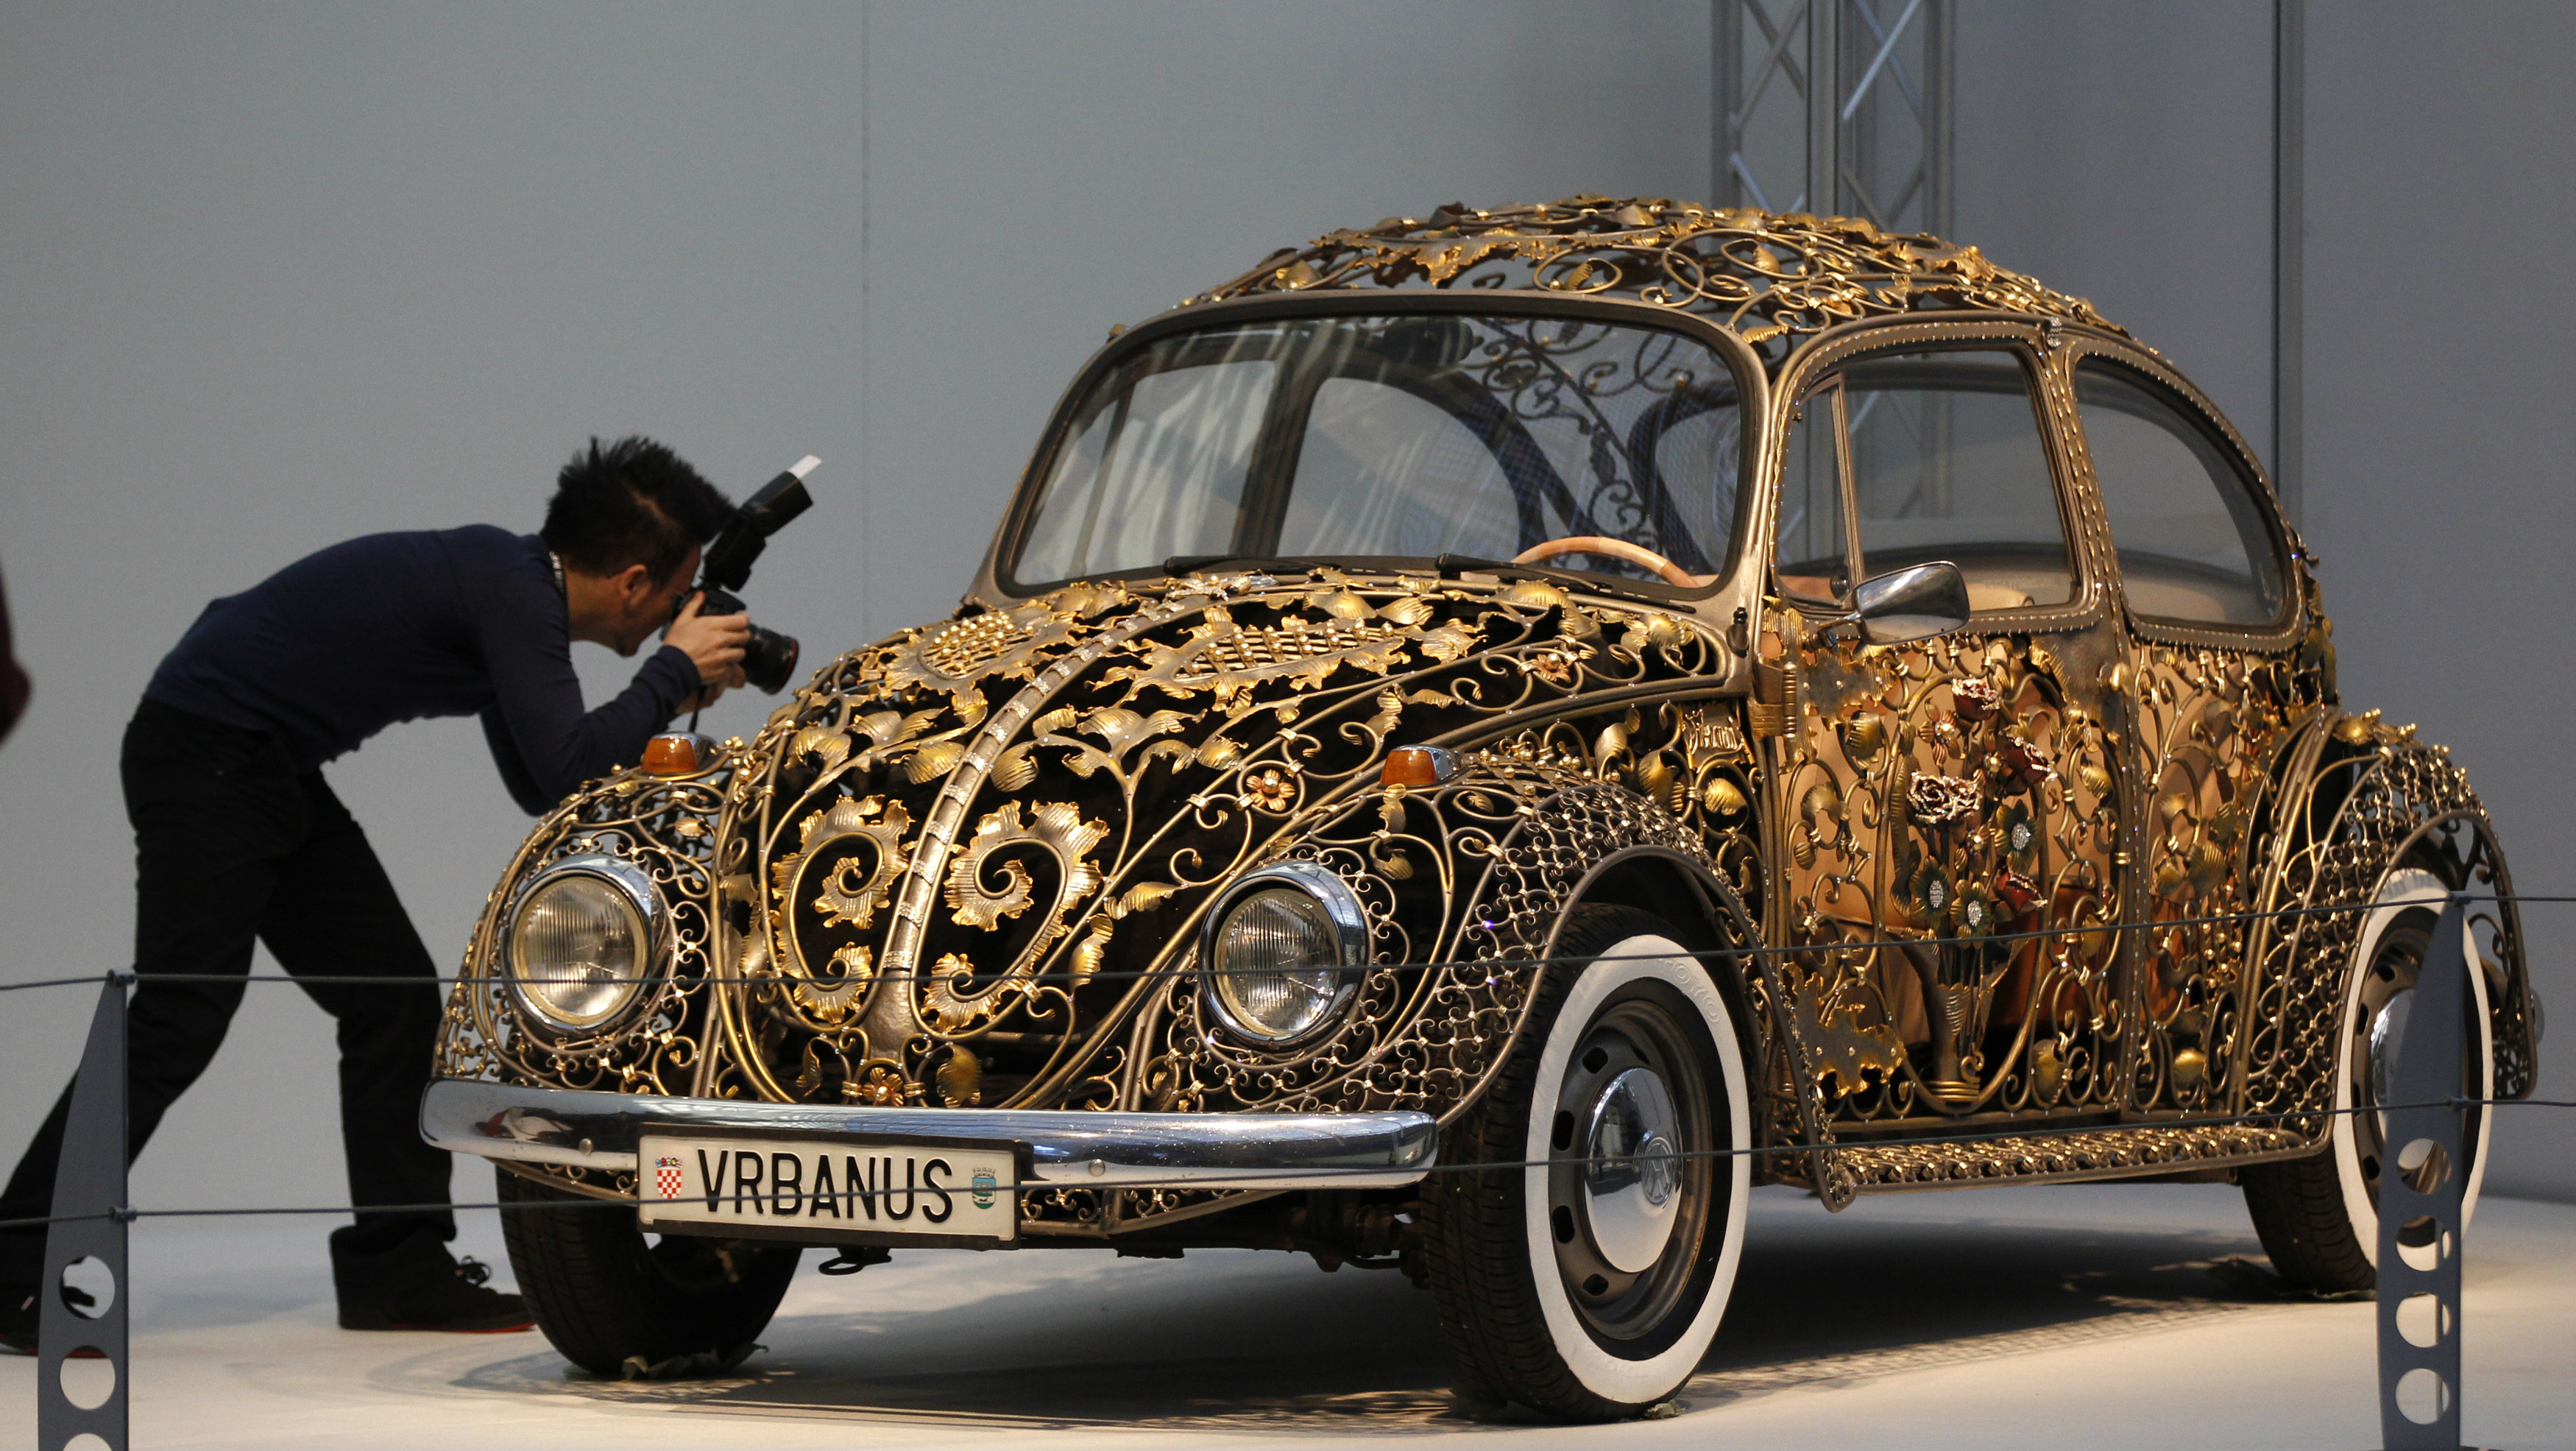 A visitor takes a picture at a modified Volkswagen VW Beetle during a press presentation prior to the Essen Motor Show in Essen November 30, 2012.